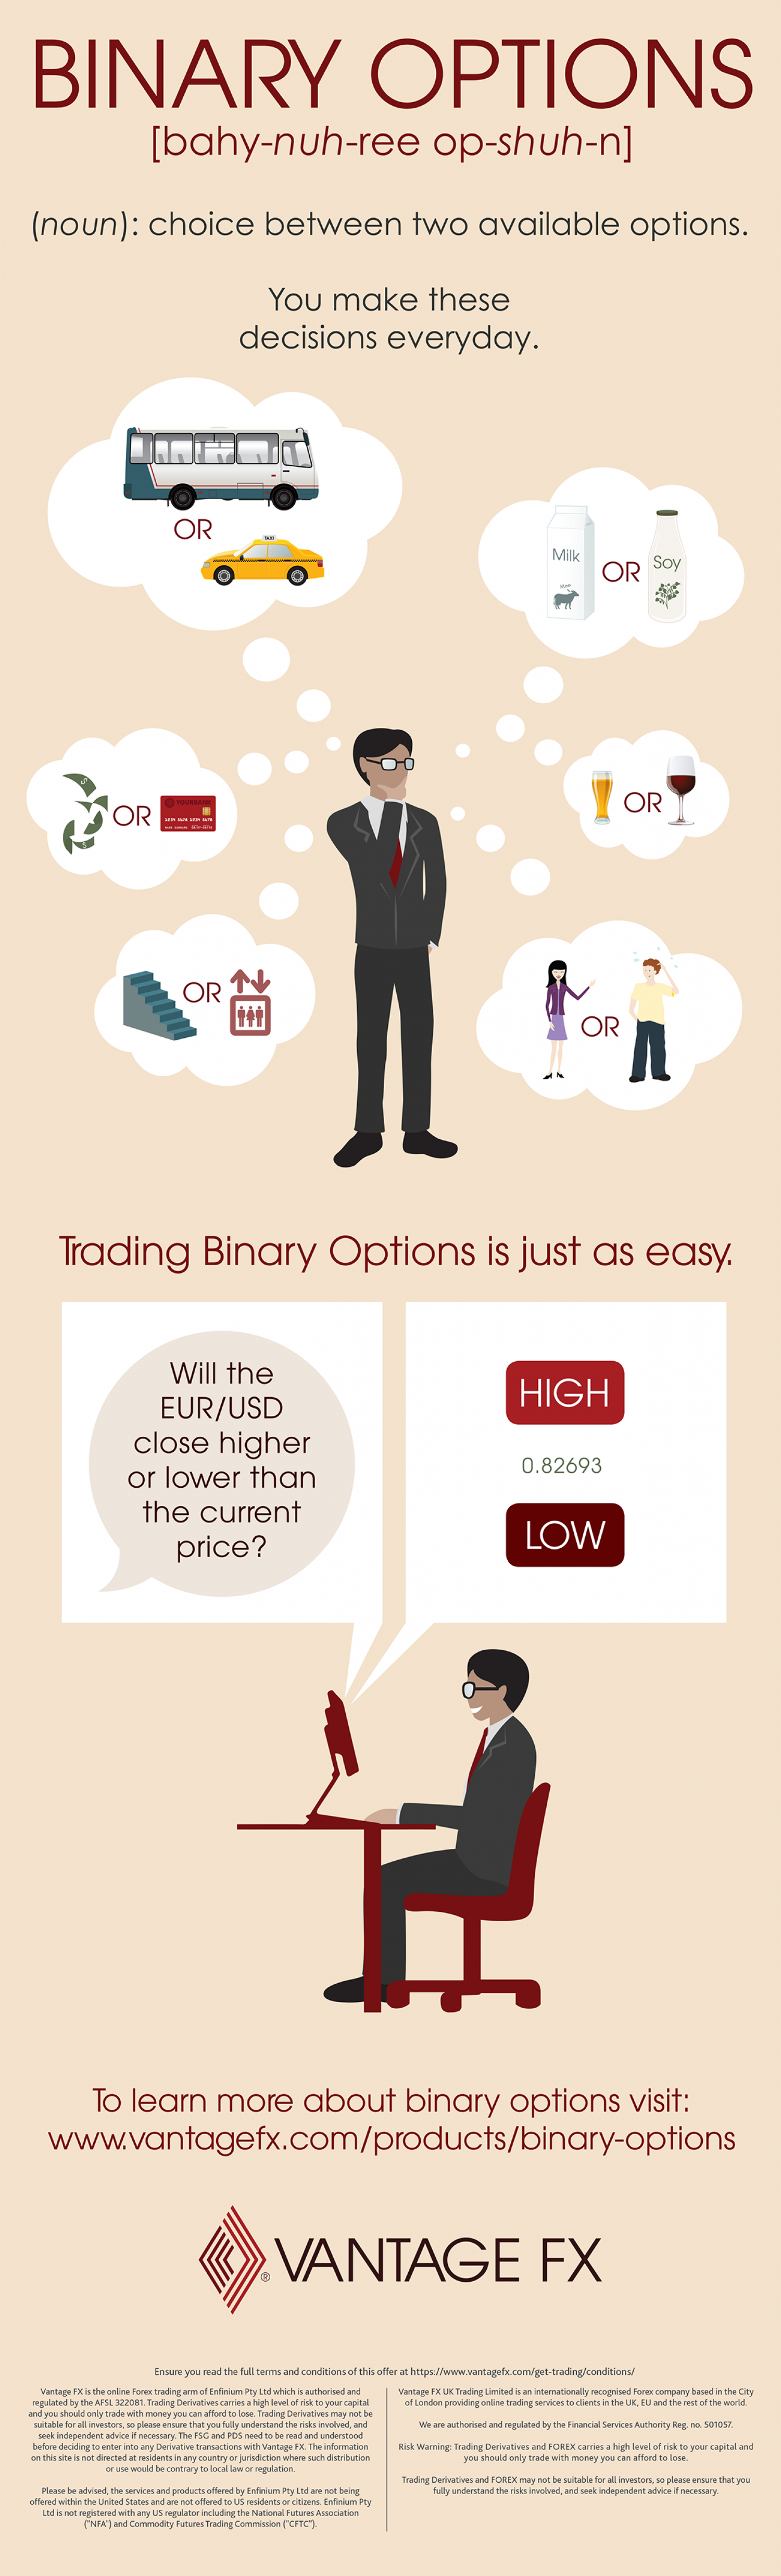 Optimarkets binary options review